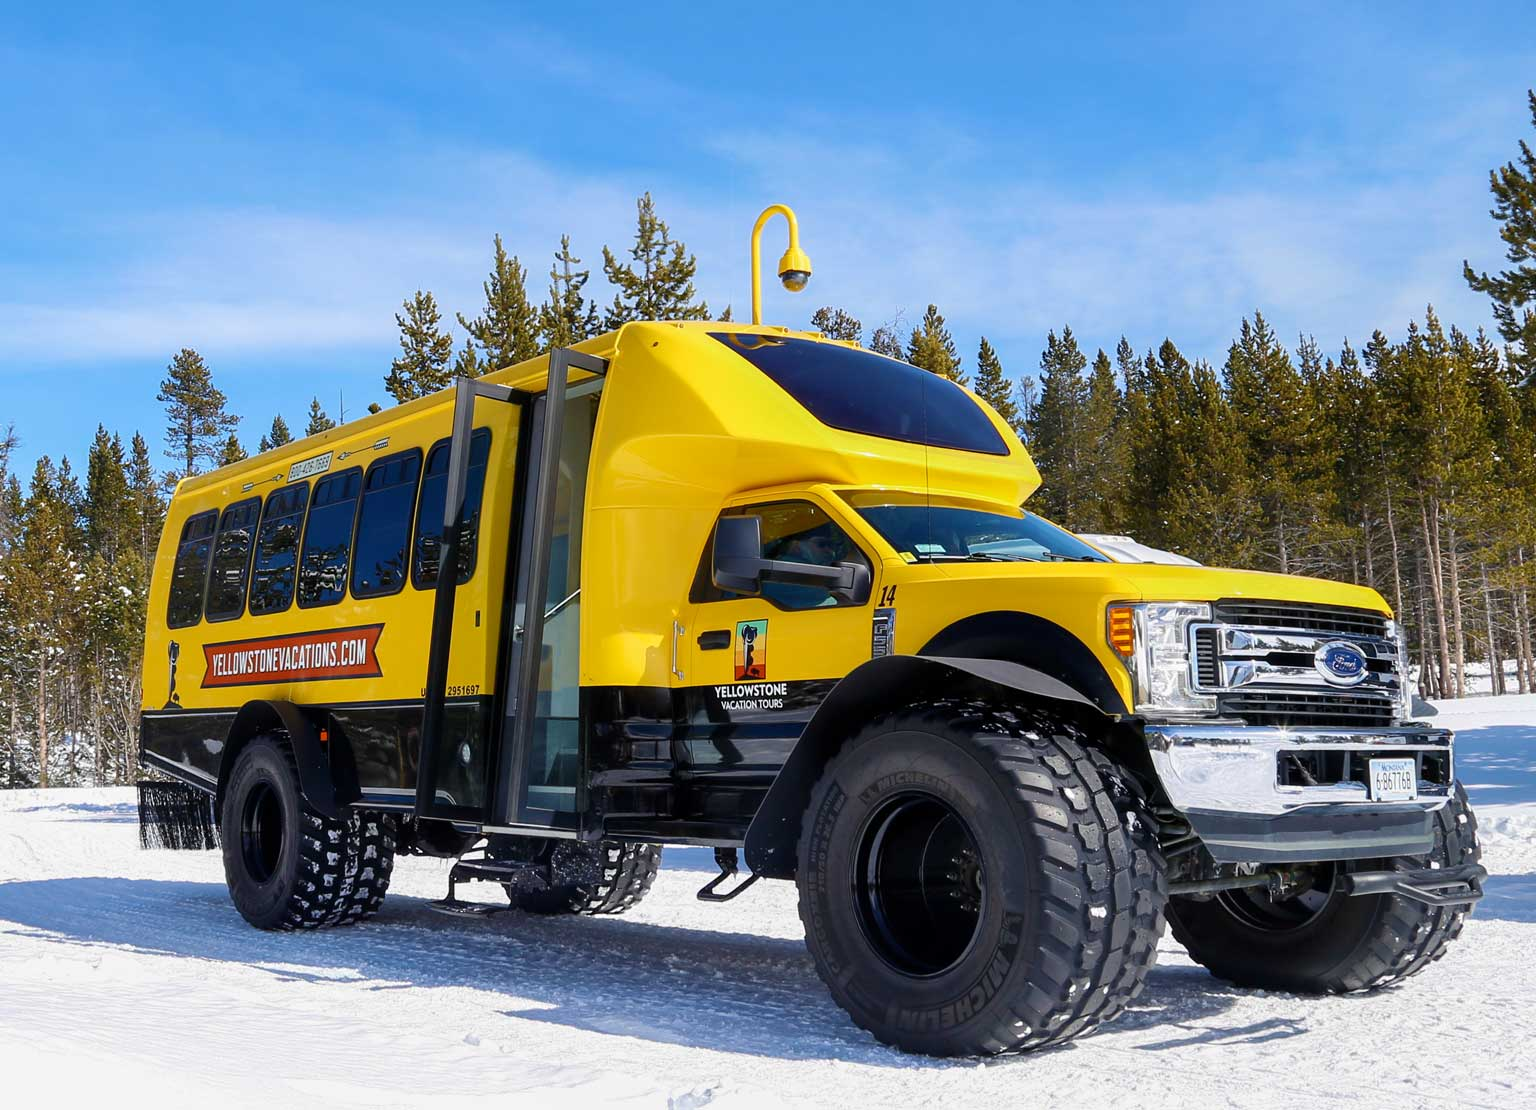 A Yellowstone Vacations snowcoach in winter